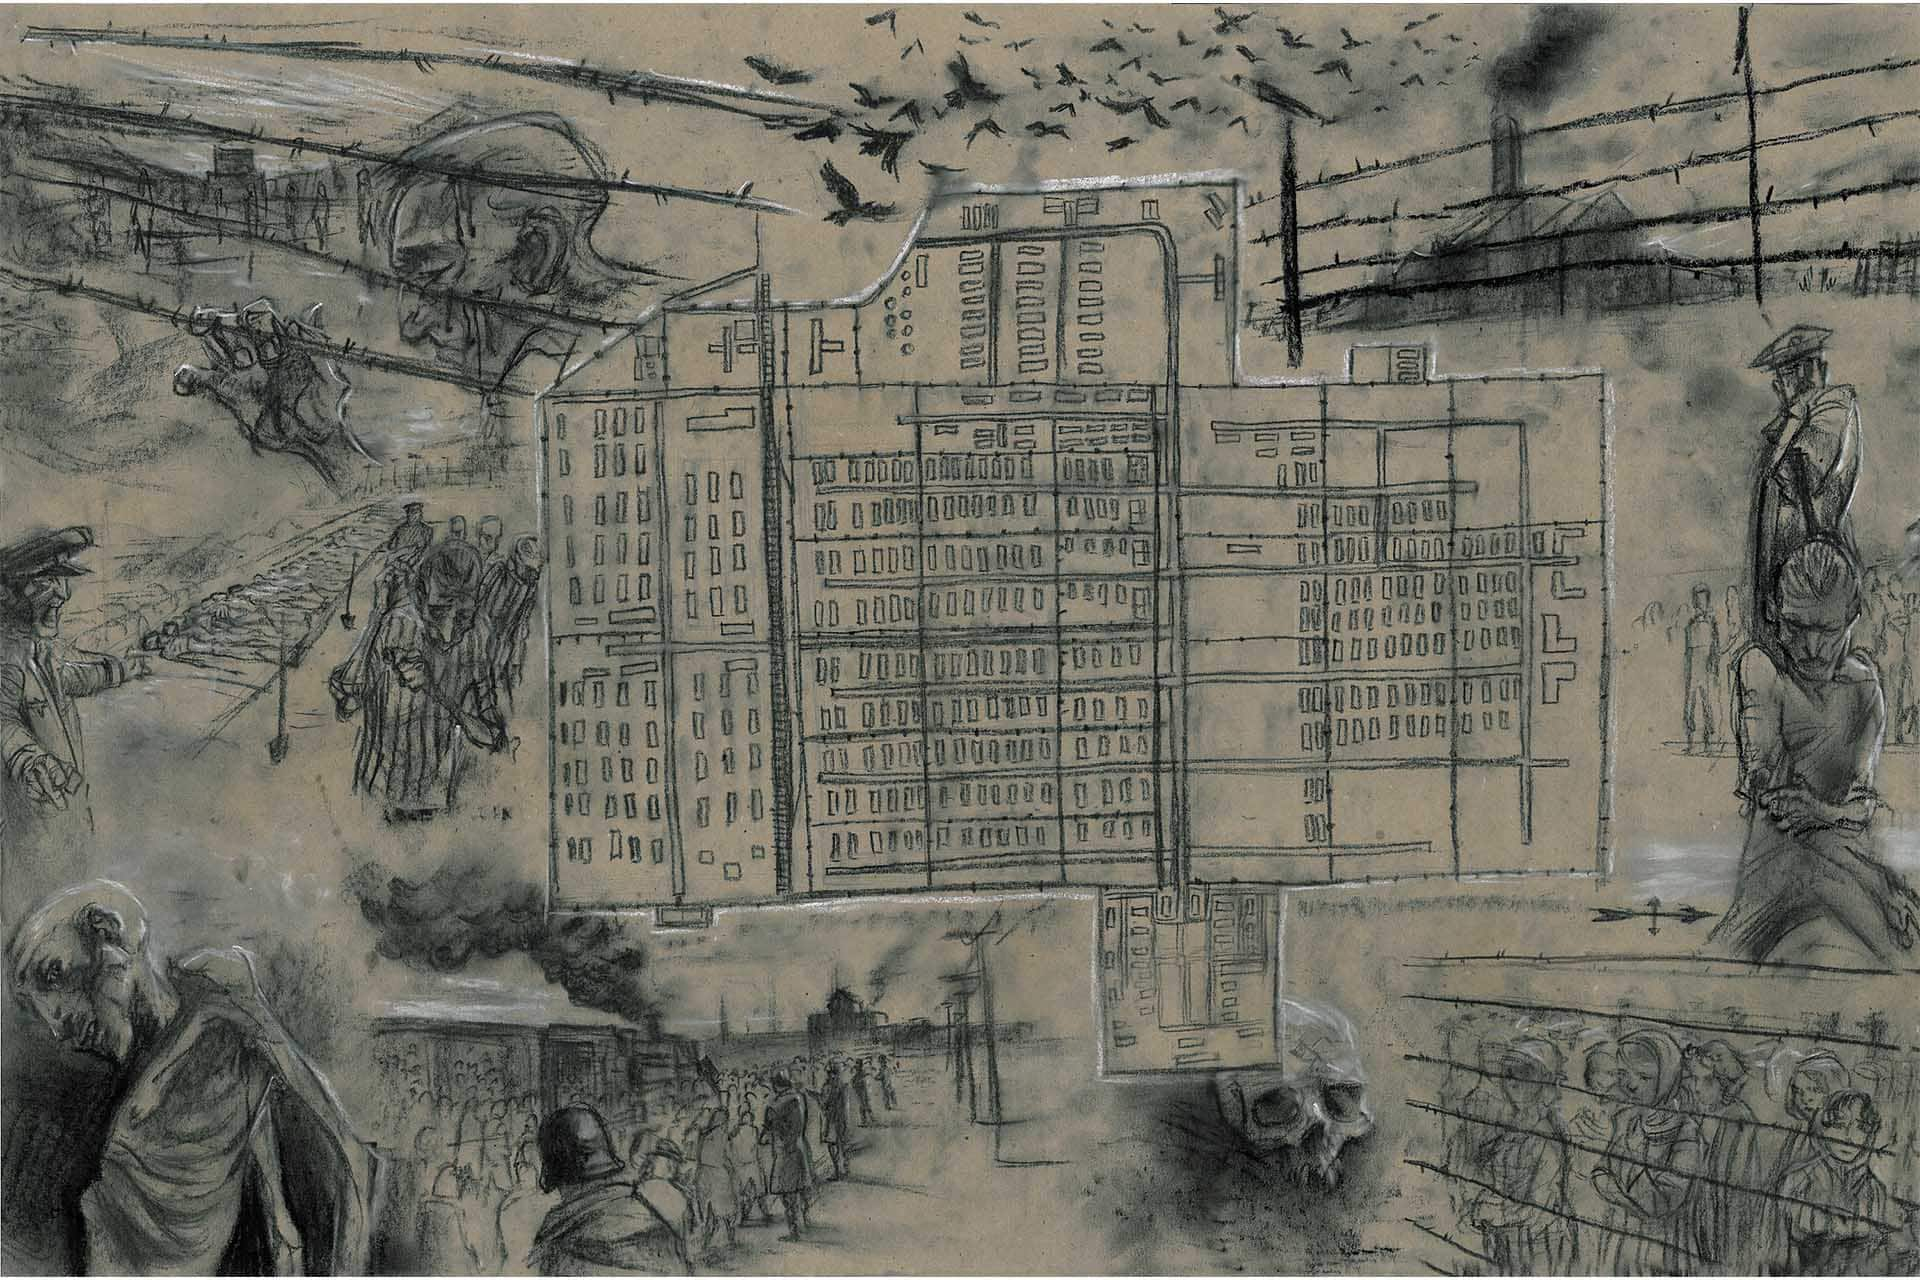 Drabek was an escapee of a concentration camp. These are his drawings.